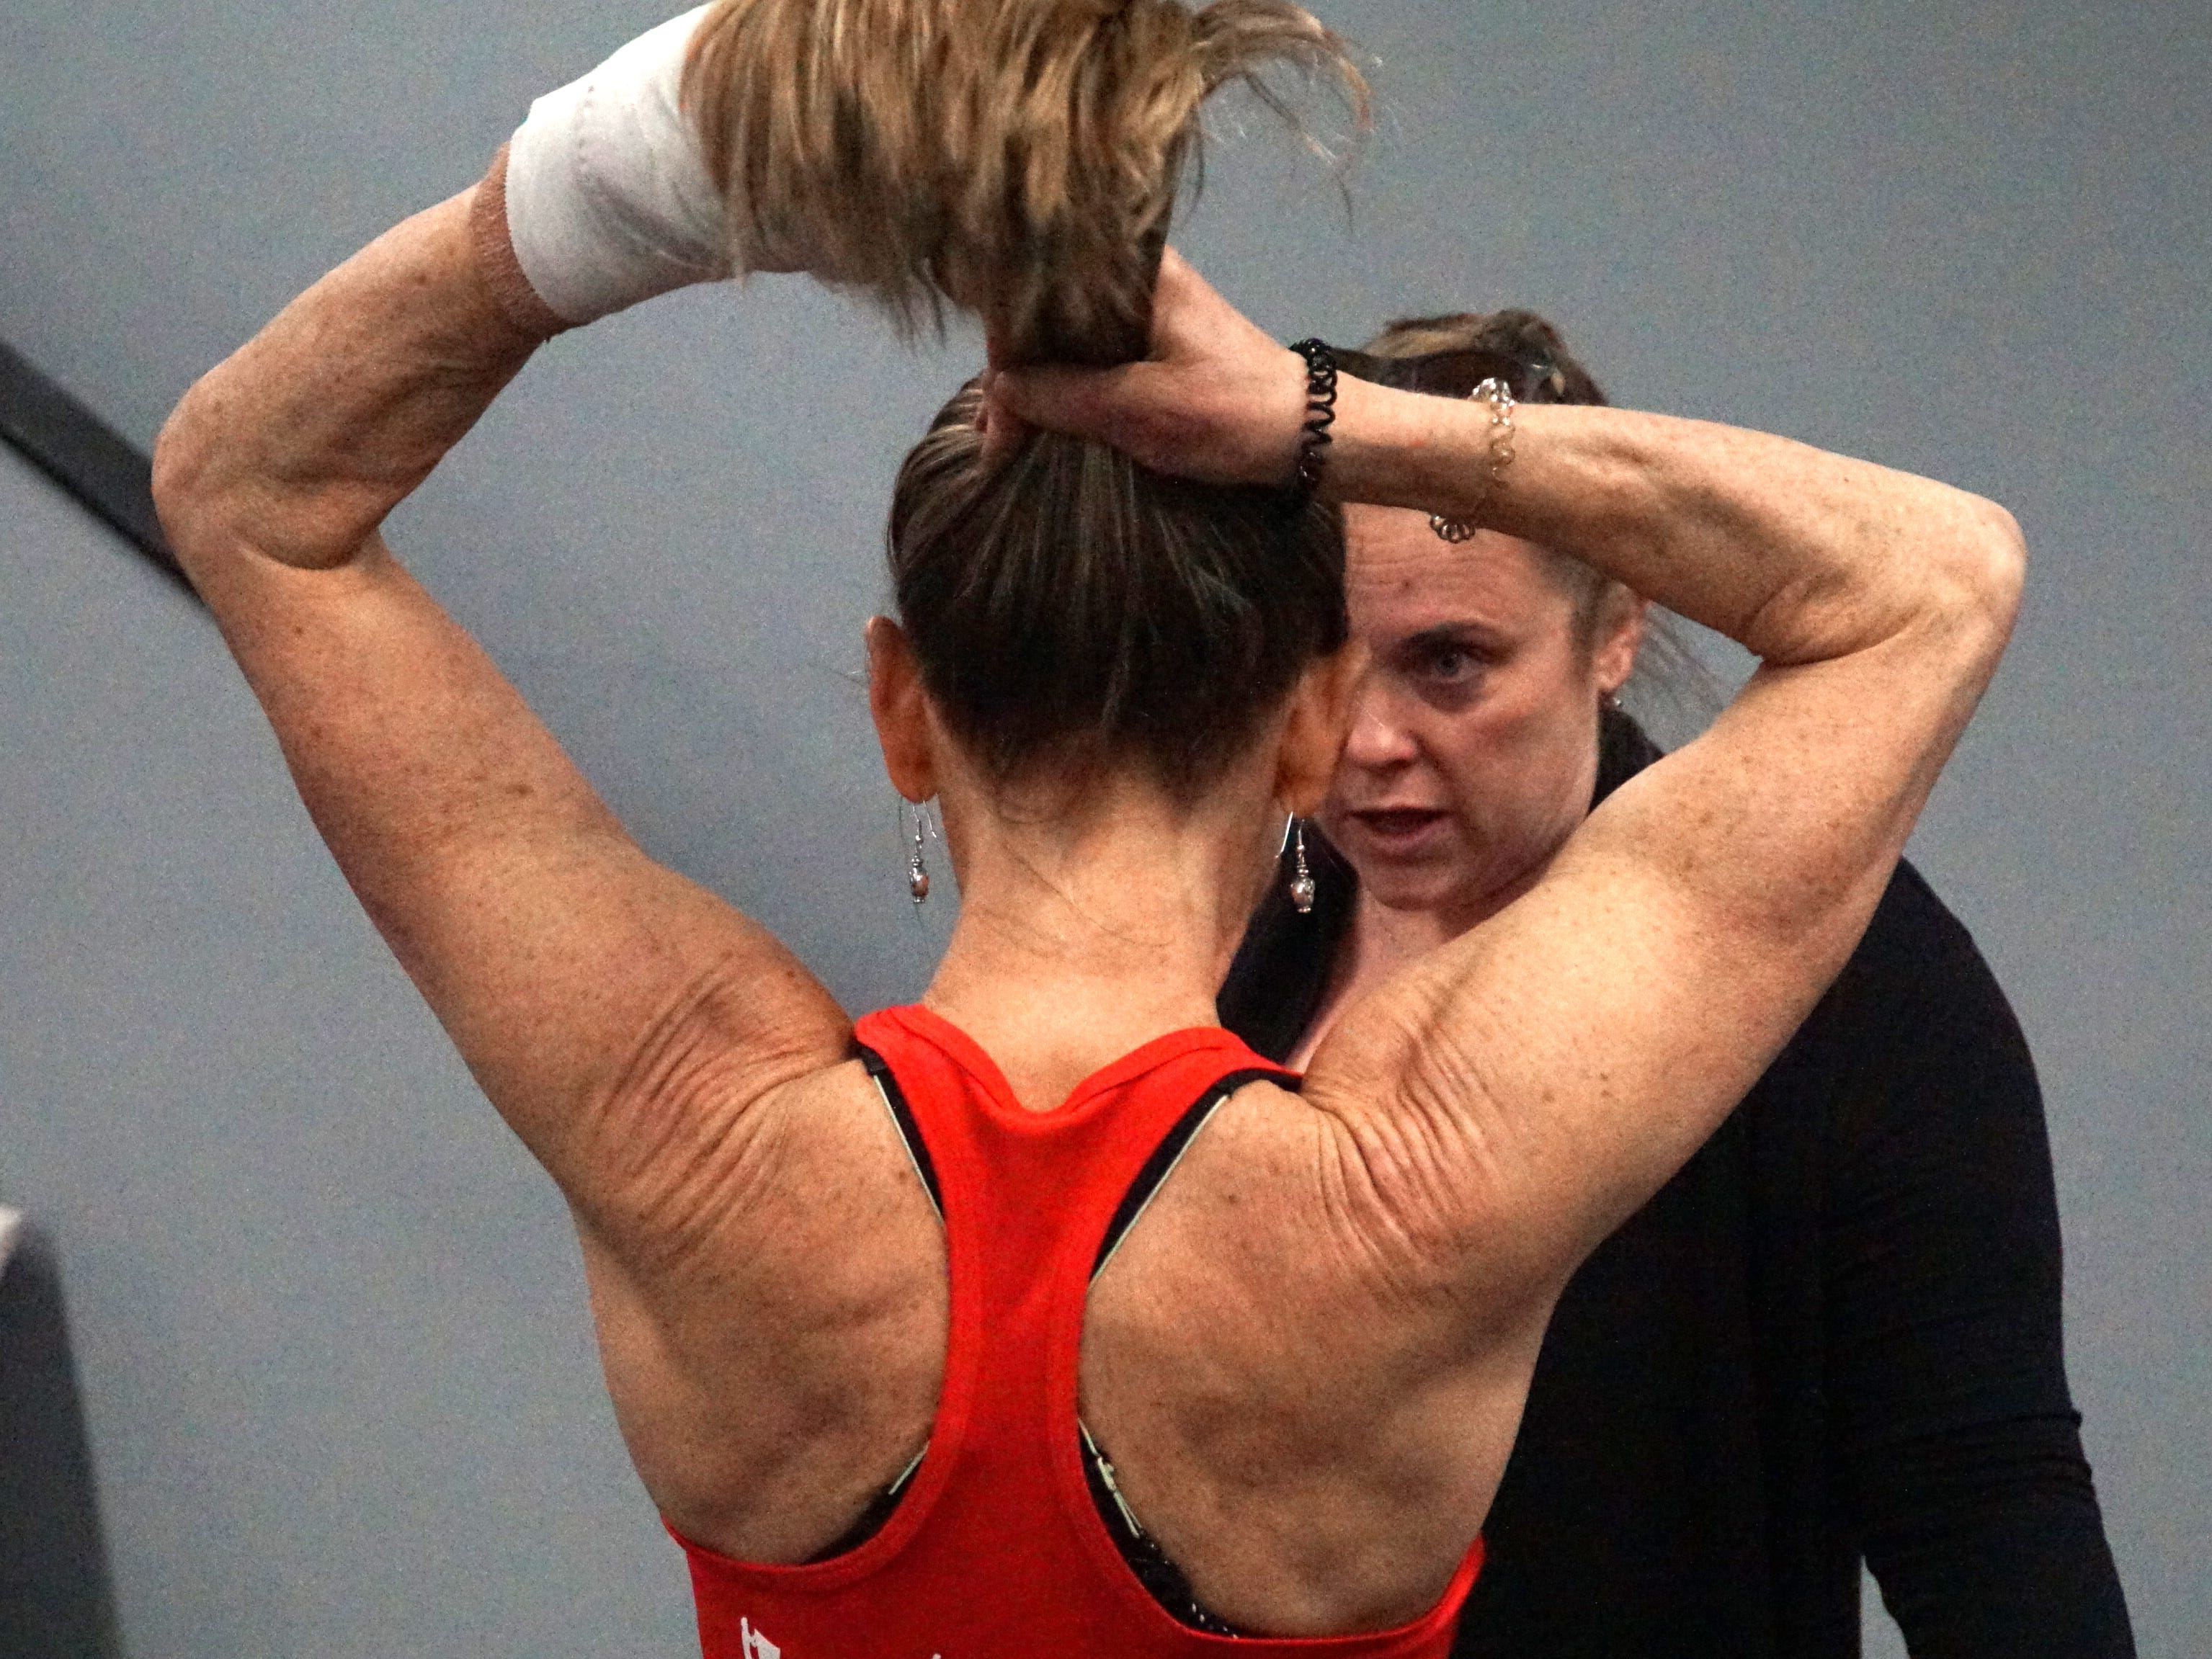 The Edge Training Center owner Carey Sherbrooke speaks to a visitor to her gym as ties her hair up in a ponytail before leading a group of youngsters through some obstacle course work on March 13. Sherbrooke's left wrist is in a bandage as she'd had carpal tunnel surgery just a few days before.